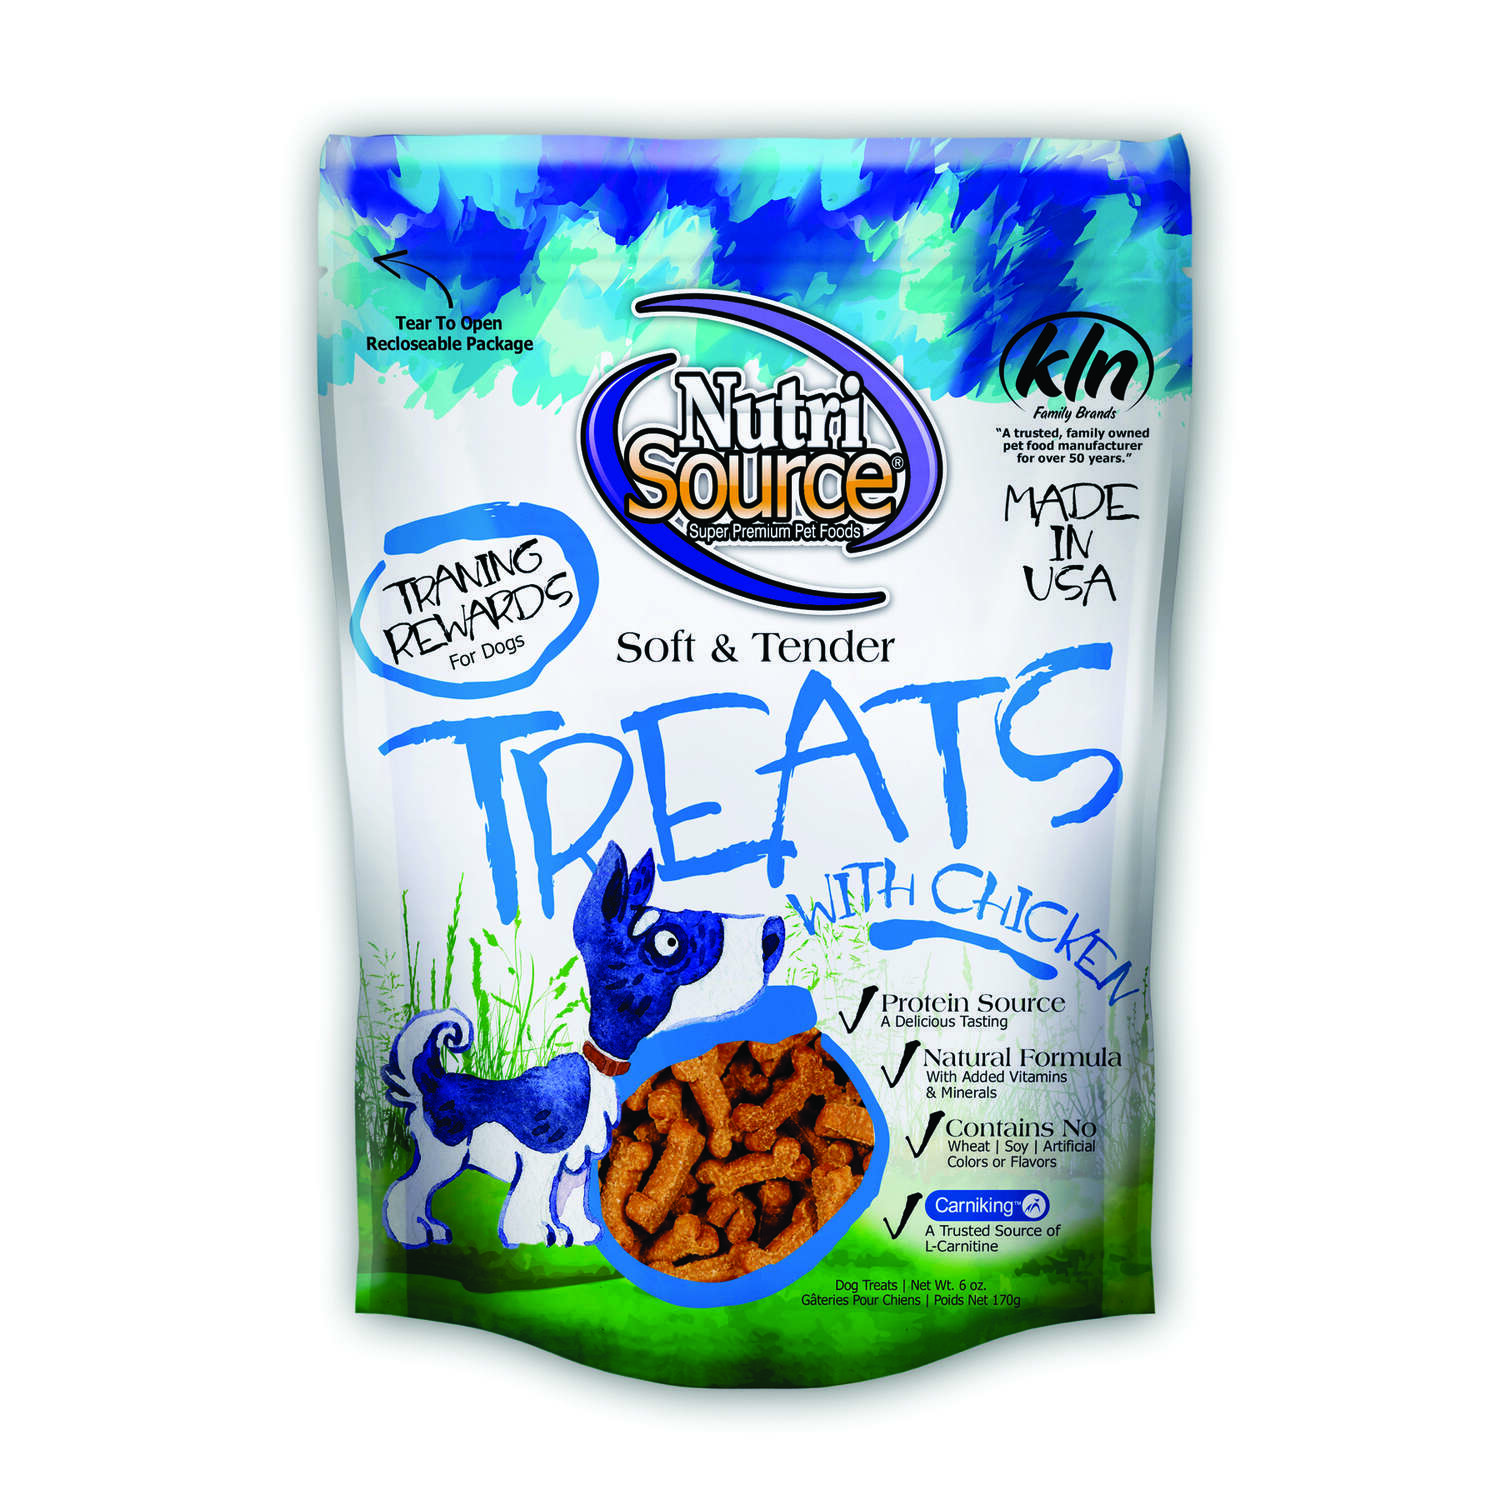 Nutri Source  Chicken  Treats  For Dogs 6 oz. 1 pk